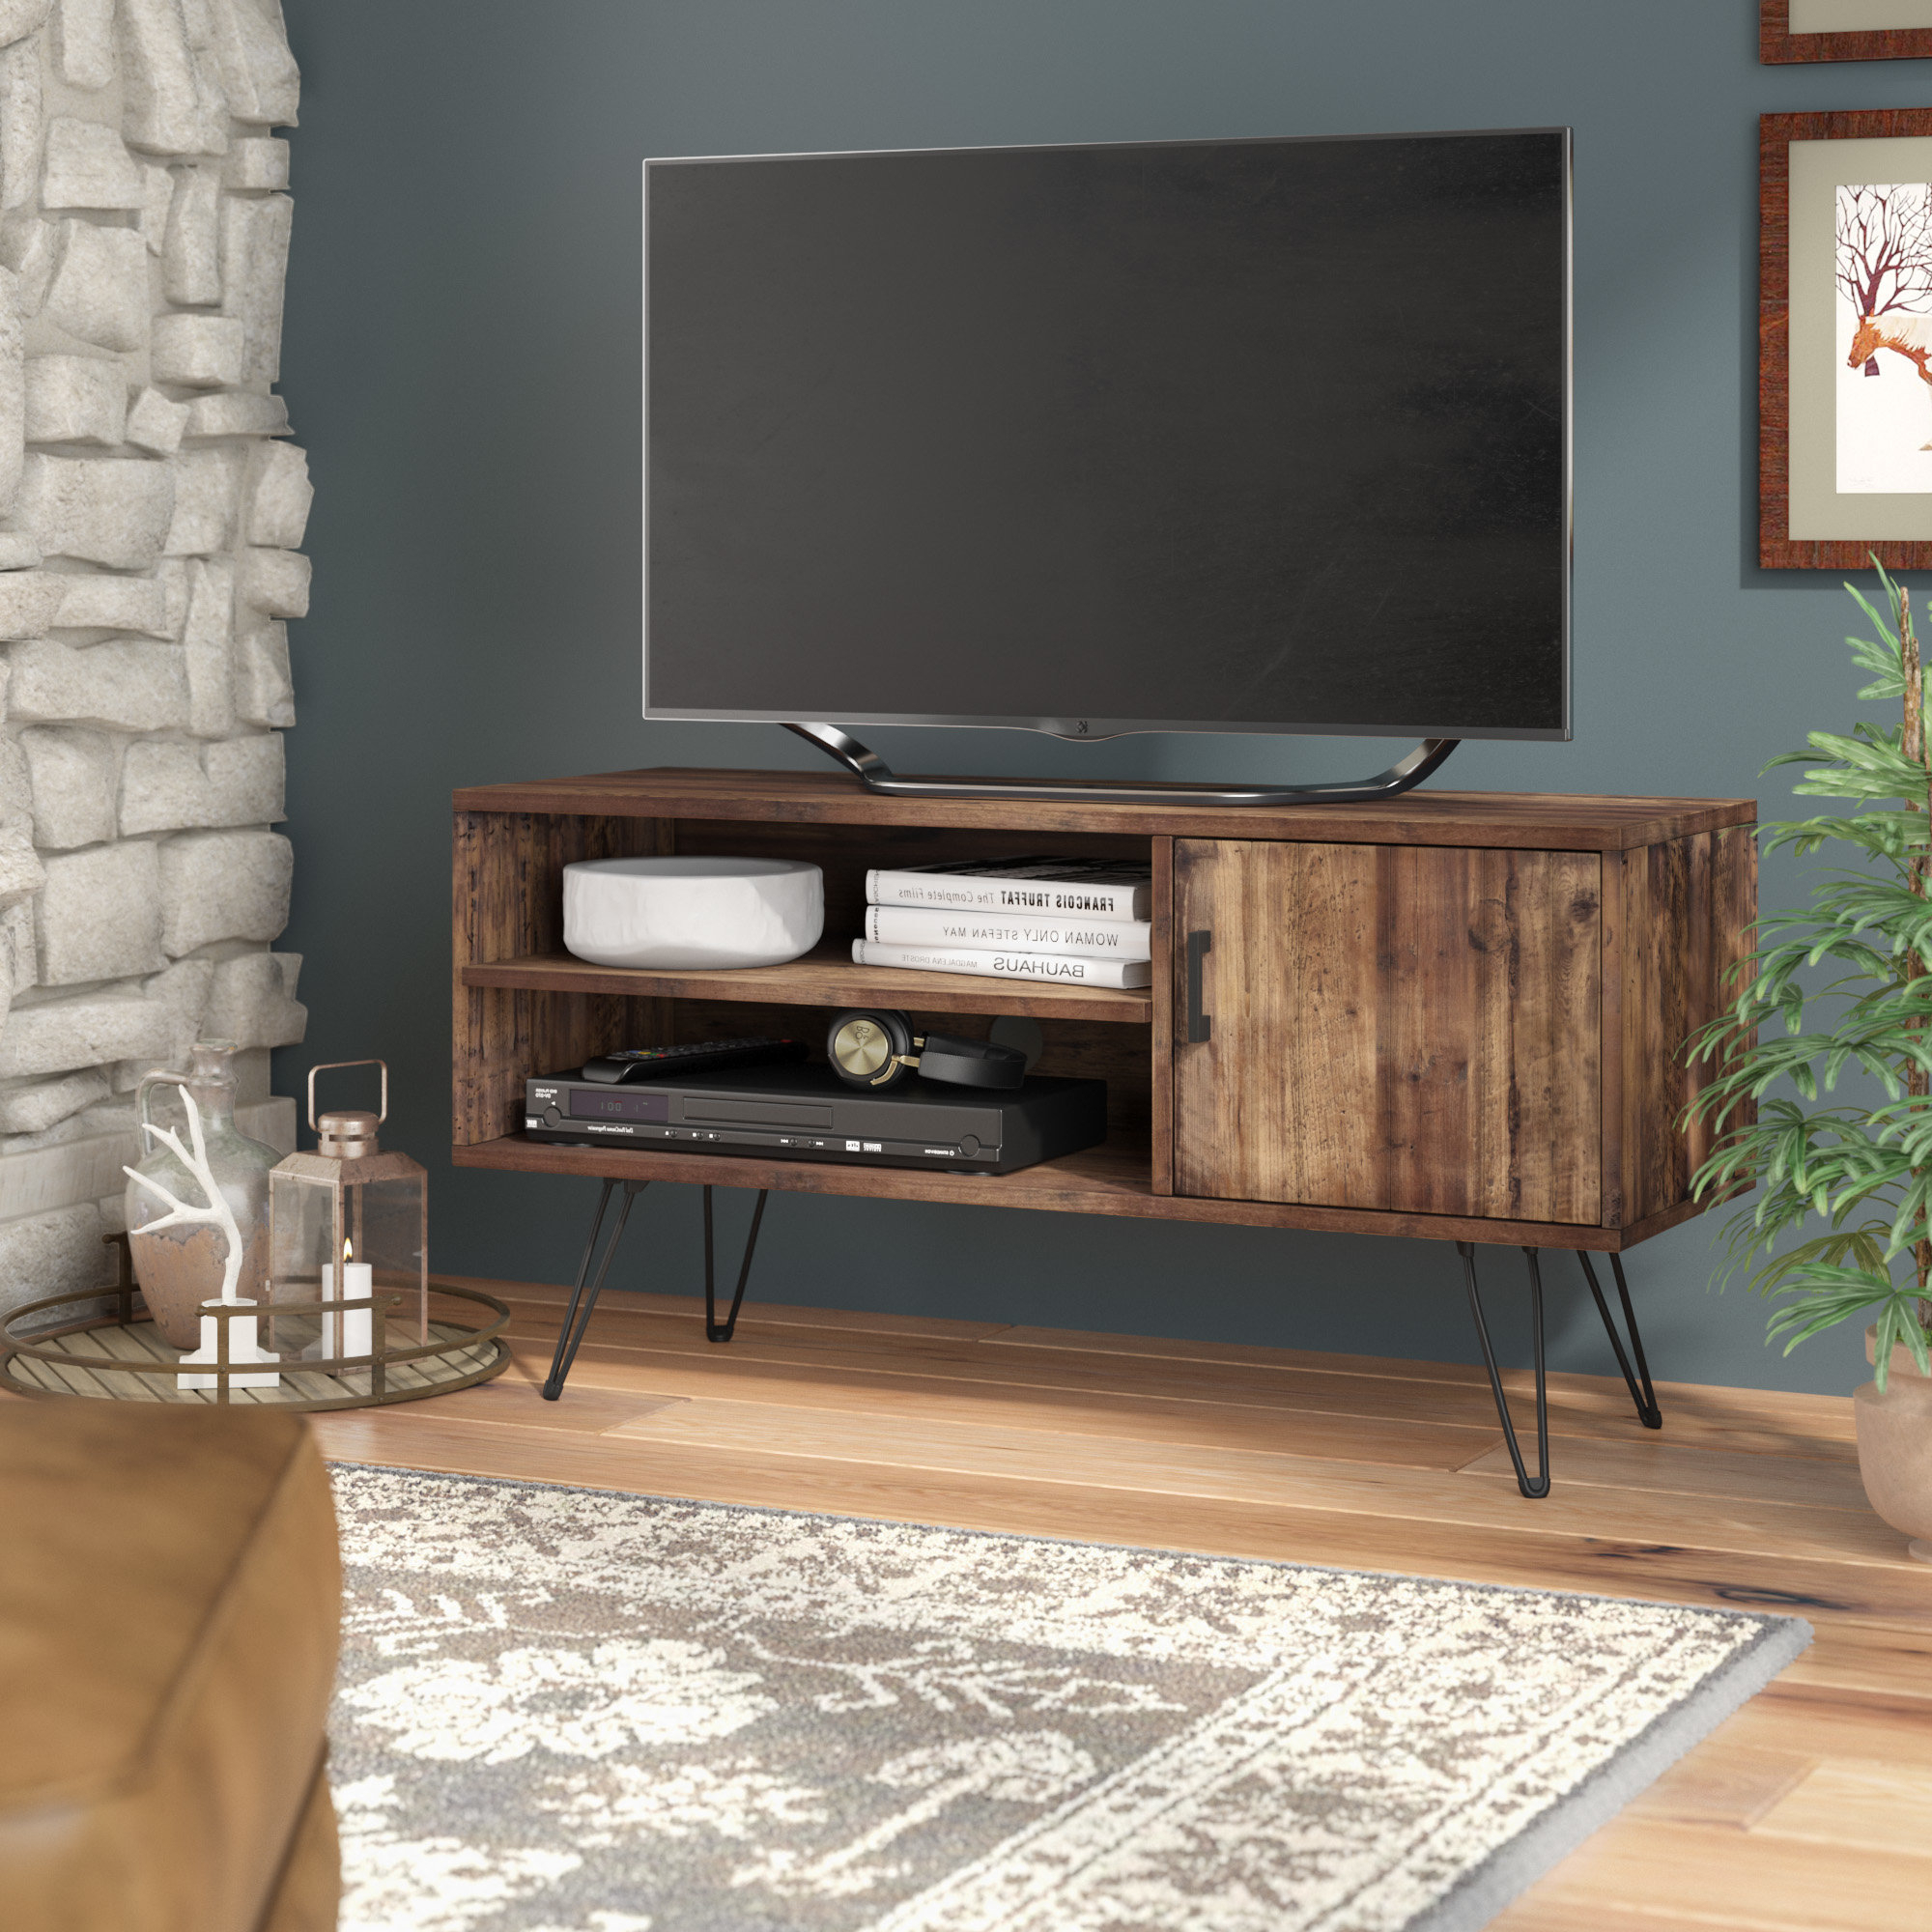 "Union Rustic Barclee Media Tv Stand For Tvs Up To 58 Regarding Ericka Tv Stands For Tvs Up To 42"" (View 6 of 20)"